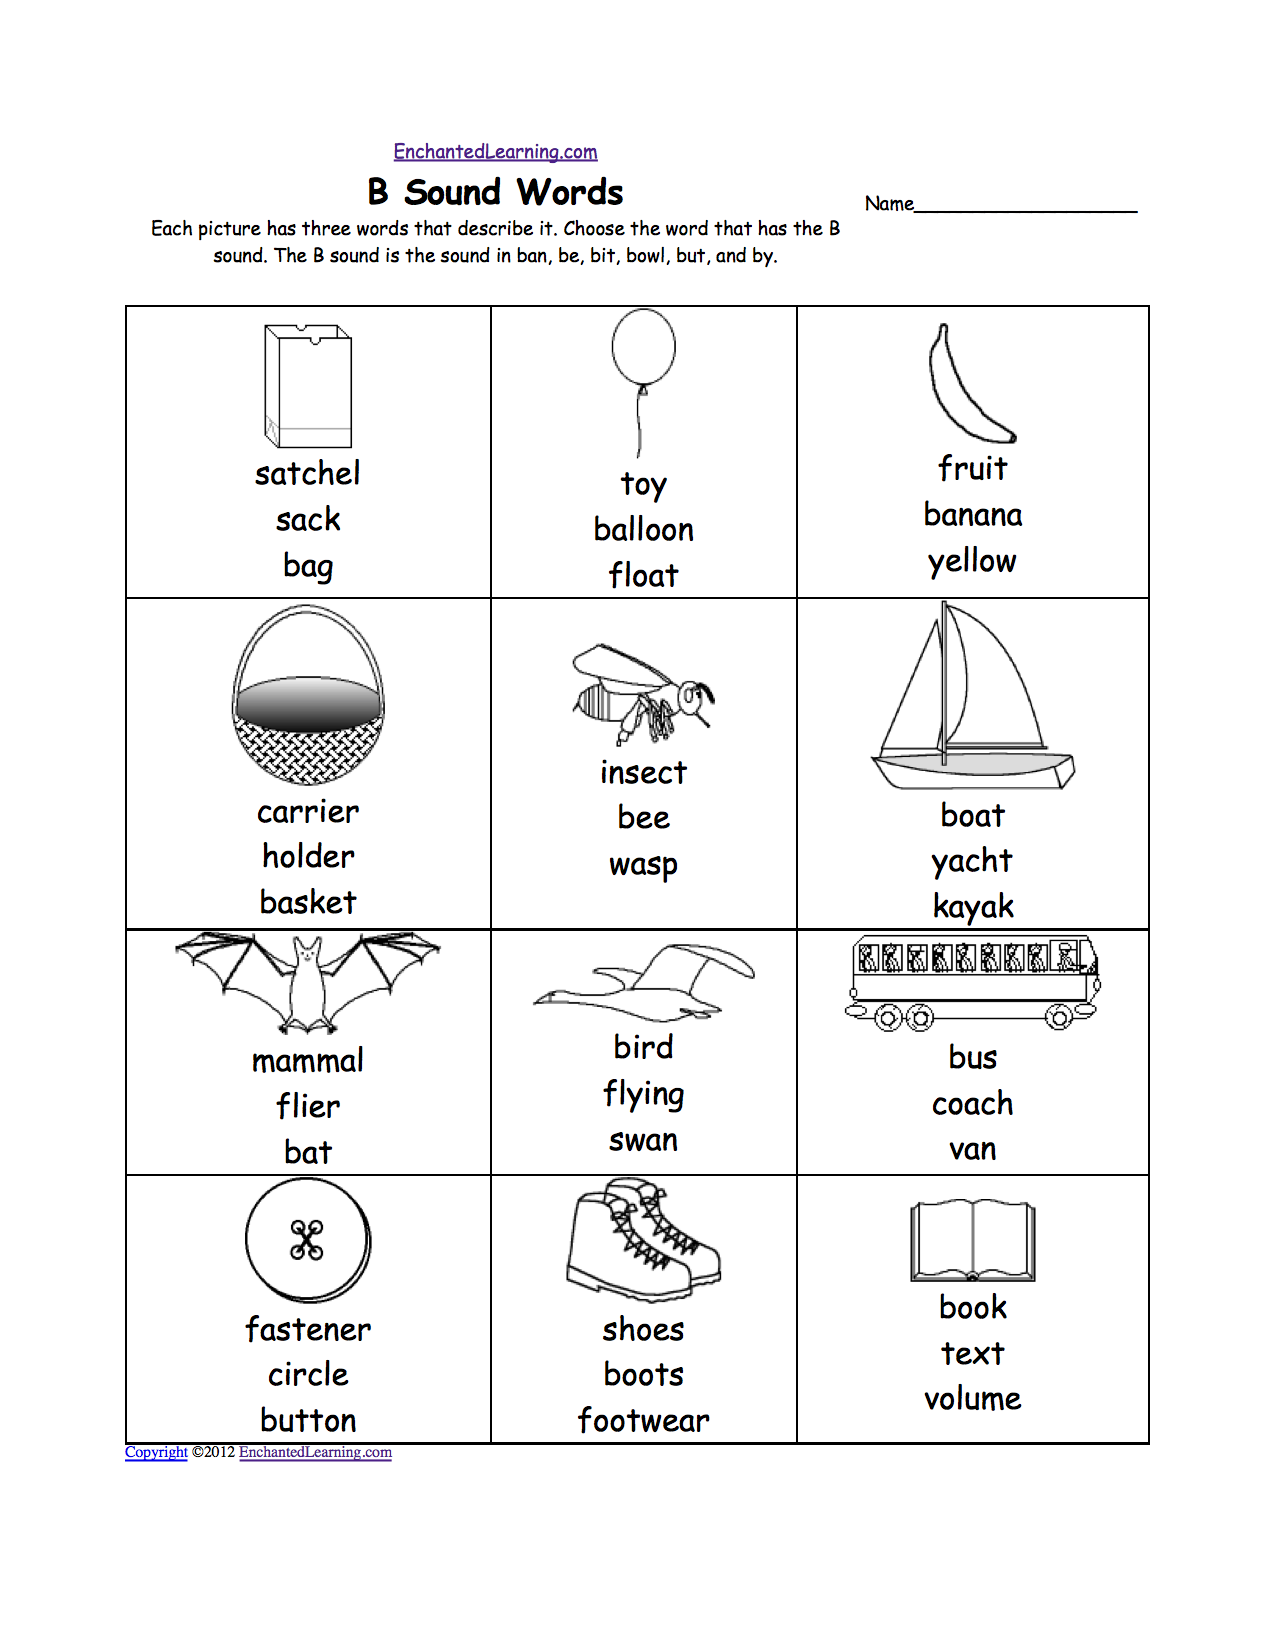 Aldiablosus  Marvelous Phonics Worksheets Multiple Choice Worksheets To Print  With Hot Quotbquot Sound Phonics Worksheet Multiple Choice Each Picture Has Three Words That Describe It Choose The Word That Has A Quotbquot Sound The Quotbquot Sound Is The Sound  With Cute Pythagorean Puzzle Worksheet Also Advanced Phonics Worksheets In Addition Preschool Sorting Worksheets And Make Inferences Worksheet As Well As Making Predictions Worksheets Nd Grade Additionally Worksheets On Reading Comprehension From Enchantedlearningcom With Aldiablosus  Hot Phonics Worksheets Multiple Choice Worksheets To Print  With Cute Quotbquot Sound Phonics Worksheet Multiple Choice Each Picture Has Three Words That Describe It Choose The Word That Has A Quotbquot Sound The Quotbquot Sound Is The Sound  And Marvelous Pythagorean Puzzle Worksheet Also Advanced Phonics Worksheets In Addition Preschool Sorting Worksheets From Enchantedlearningcom